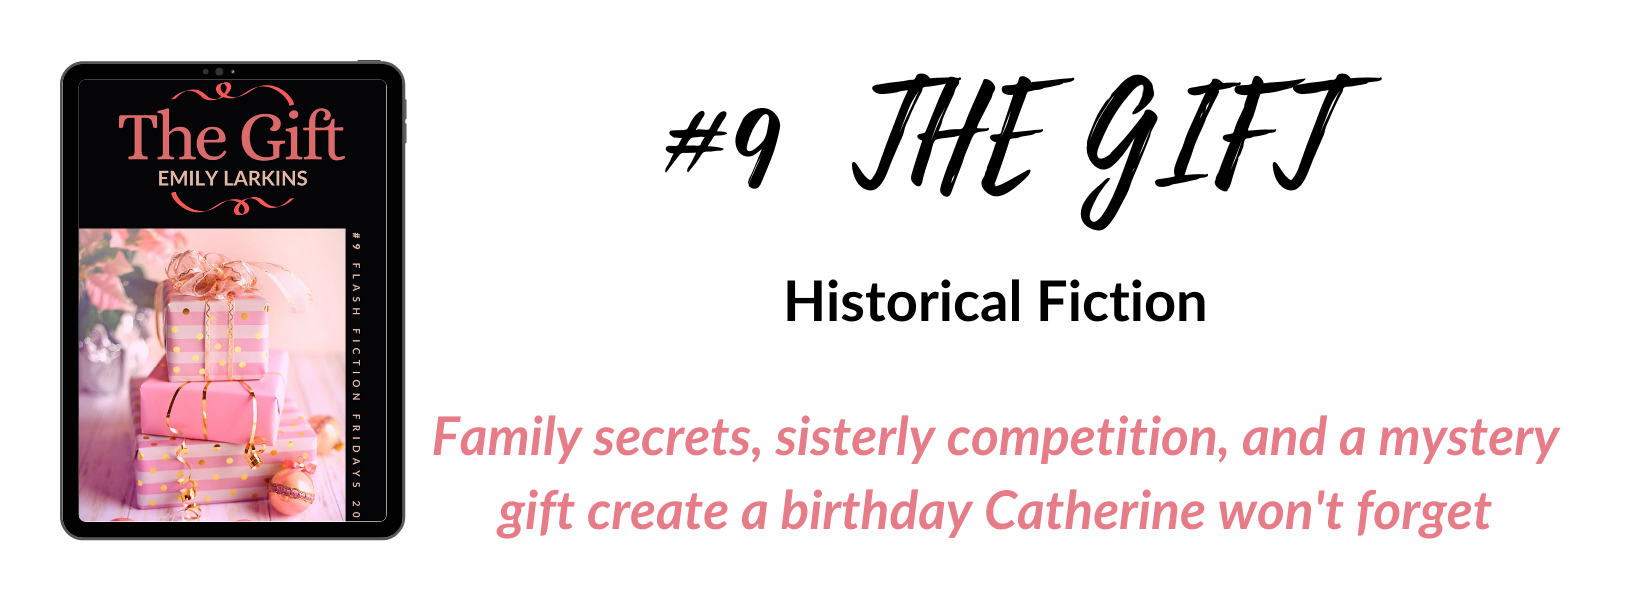 Book nine cover, The Gift, a historical fiction story with a family secret at the heart.